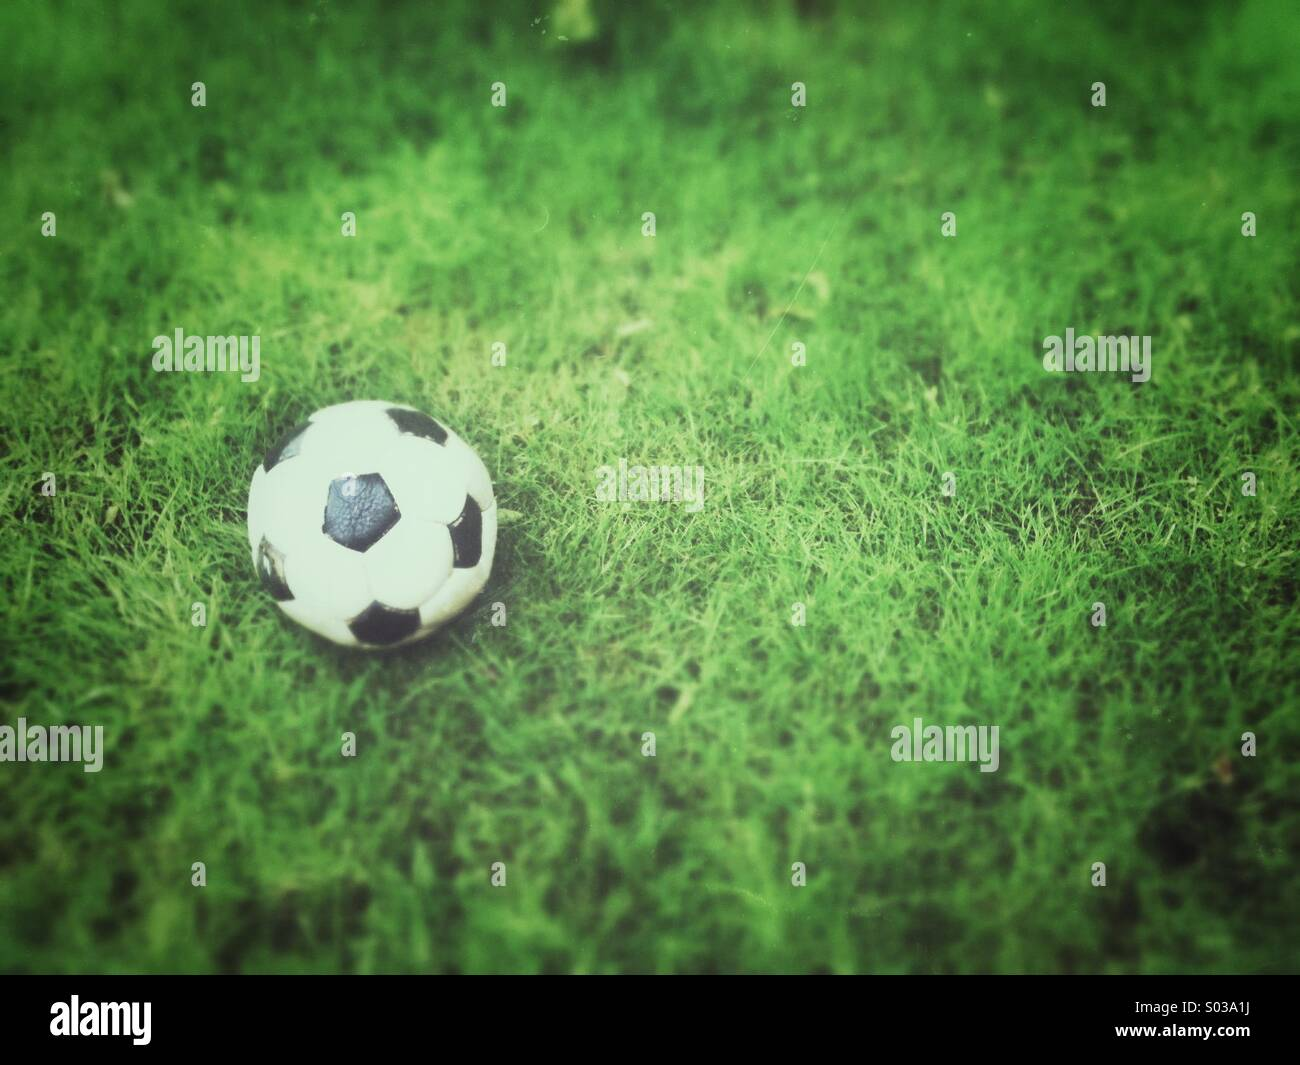 Old football, deflated on grass. Grunge and tilt-shift effects applied. - Stock Image